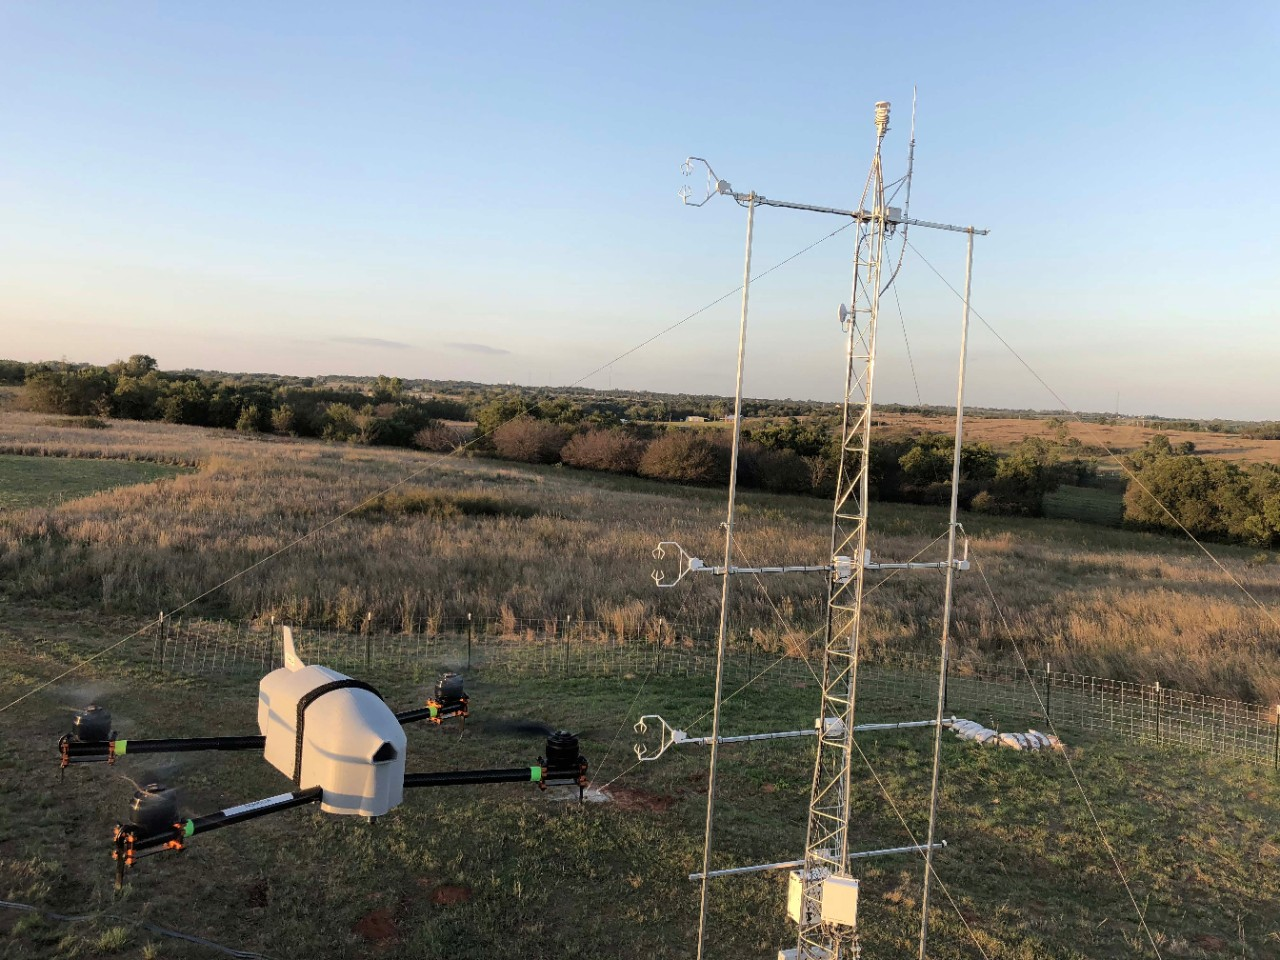 The CopterSonde aircraft is being flown next to a meterological tower